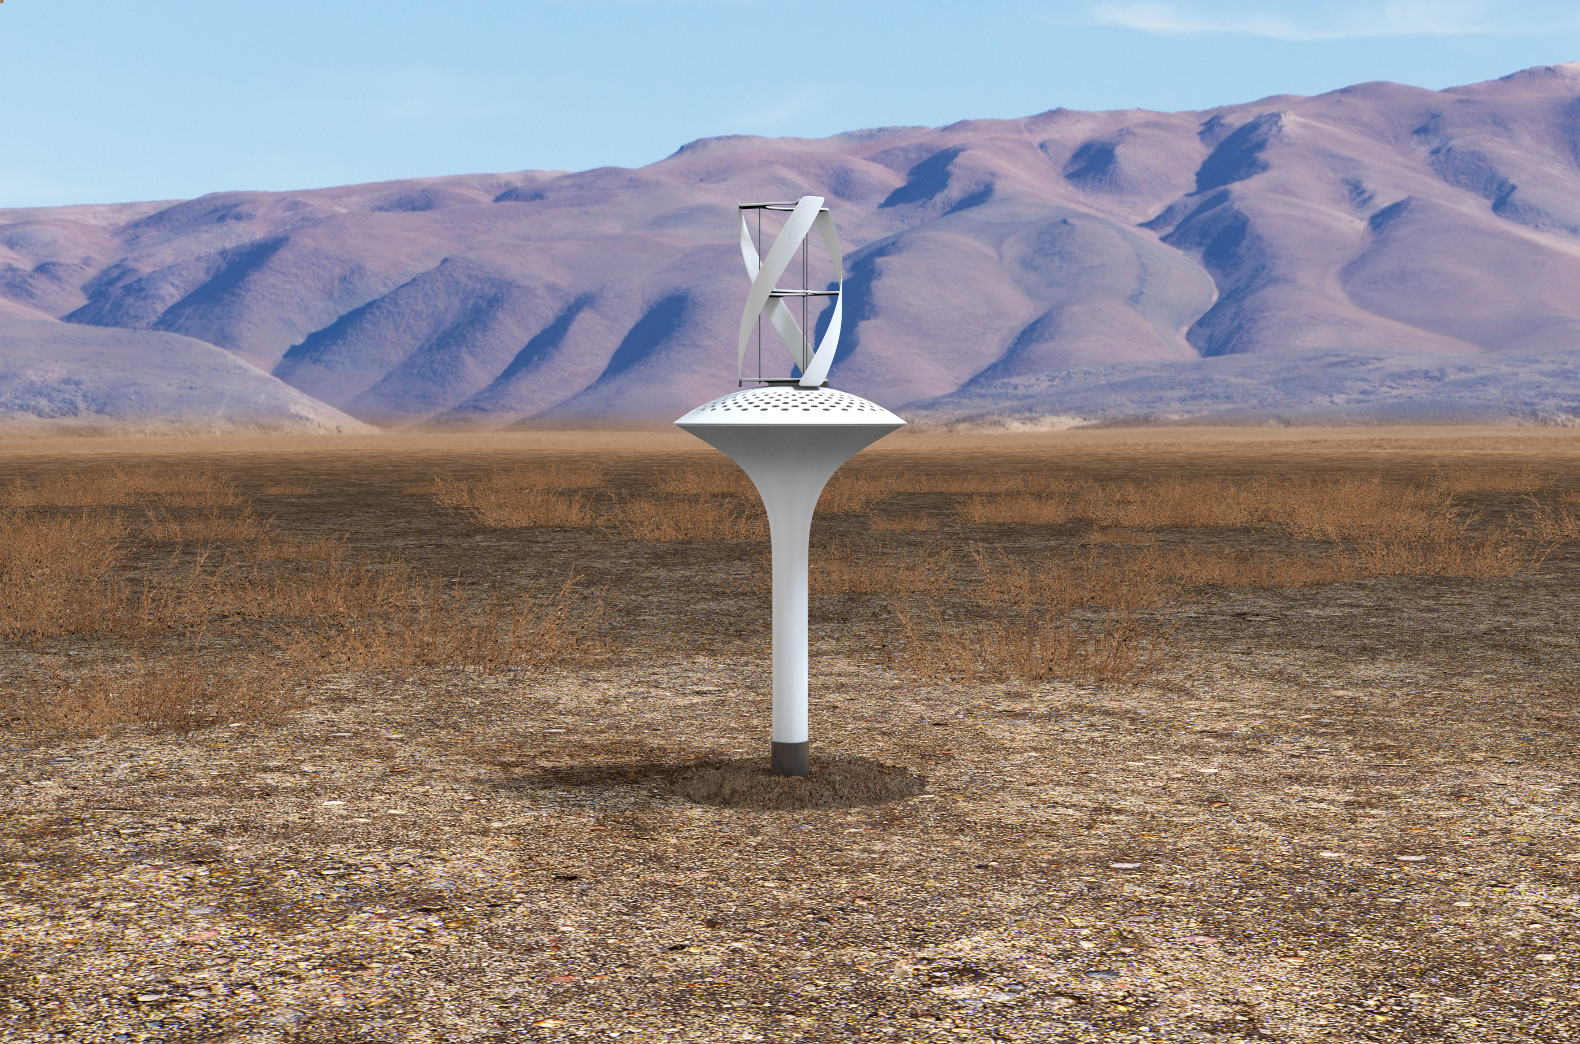 Wind-powered Water Seer pulls 11 gallons of clean drinking water from thin air